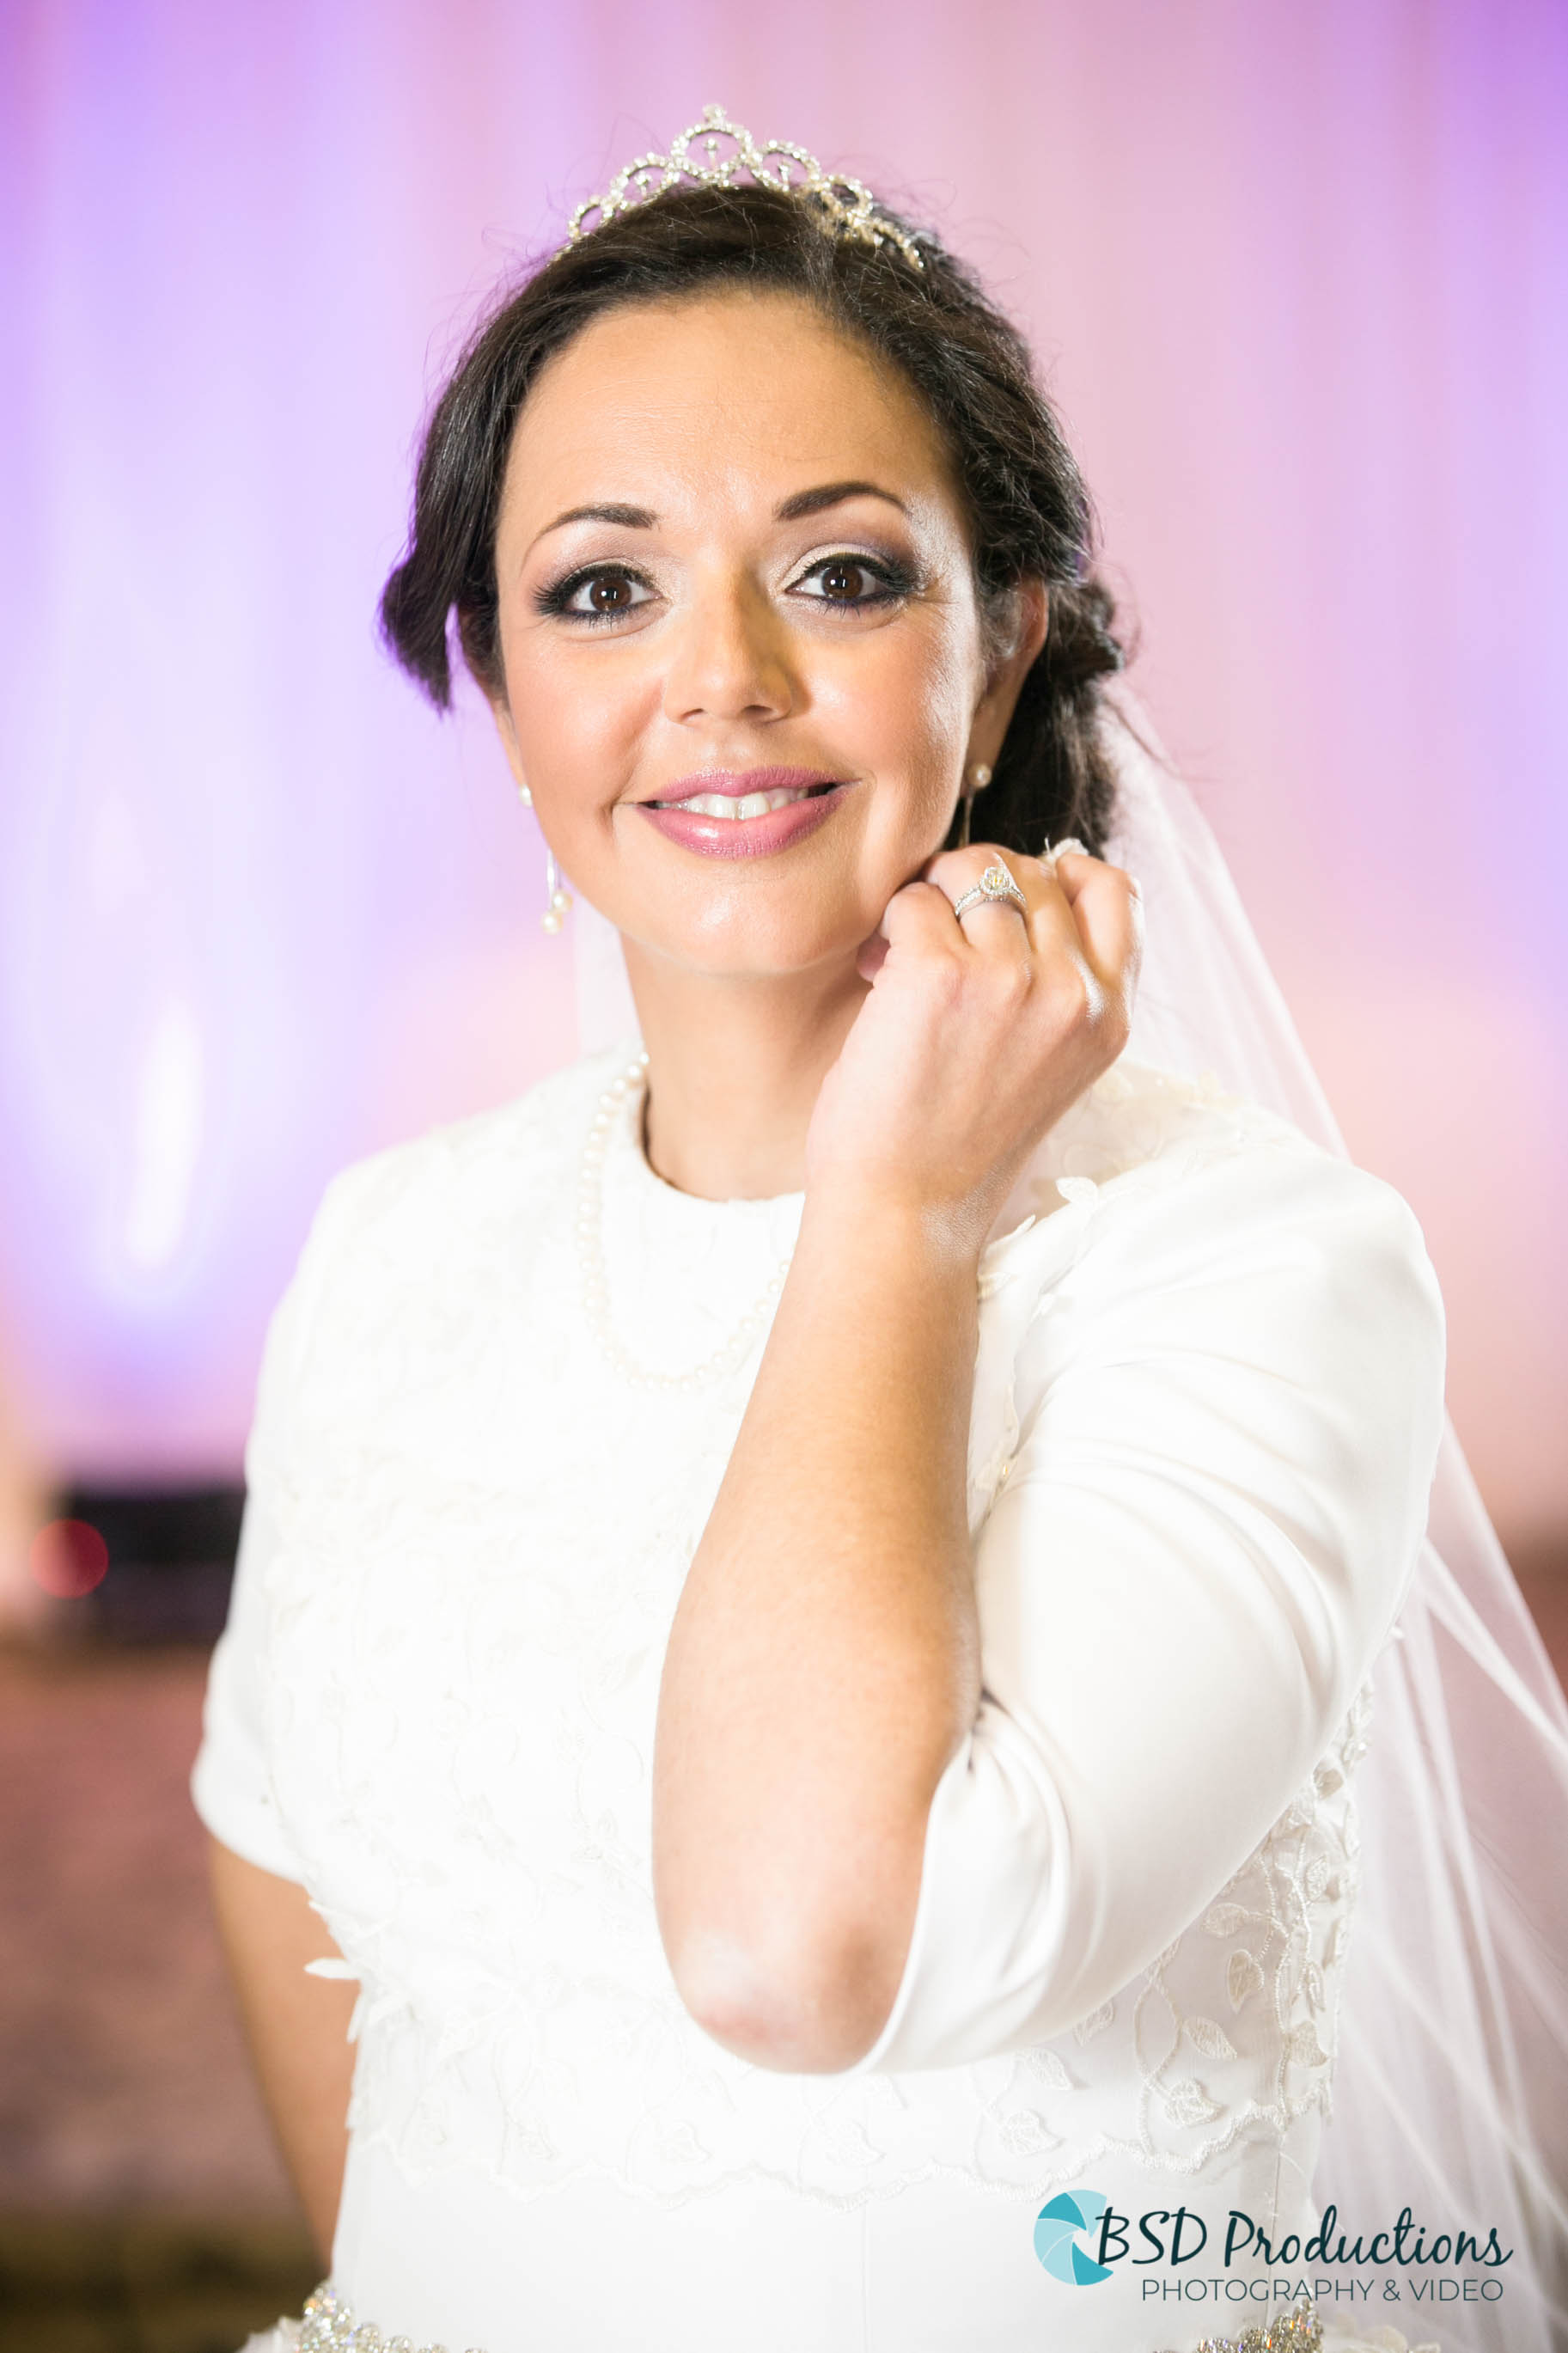 UH5A0599 Wedding – BSD Productions Photography